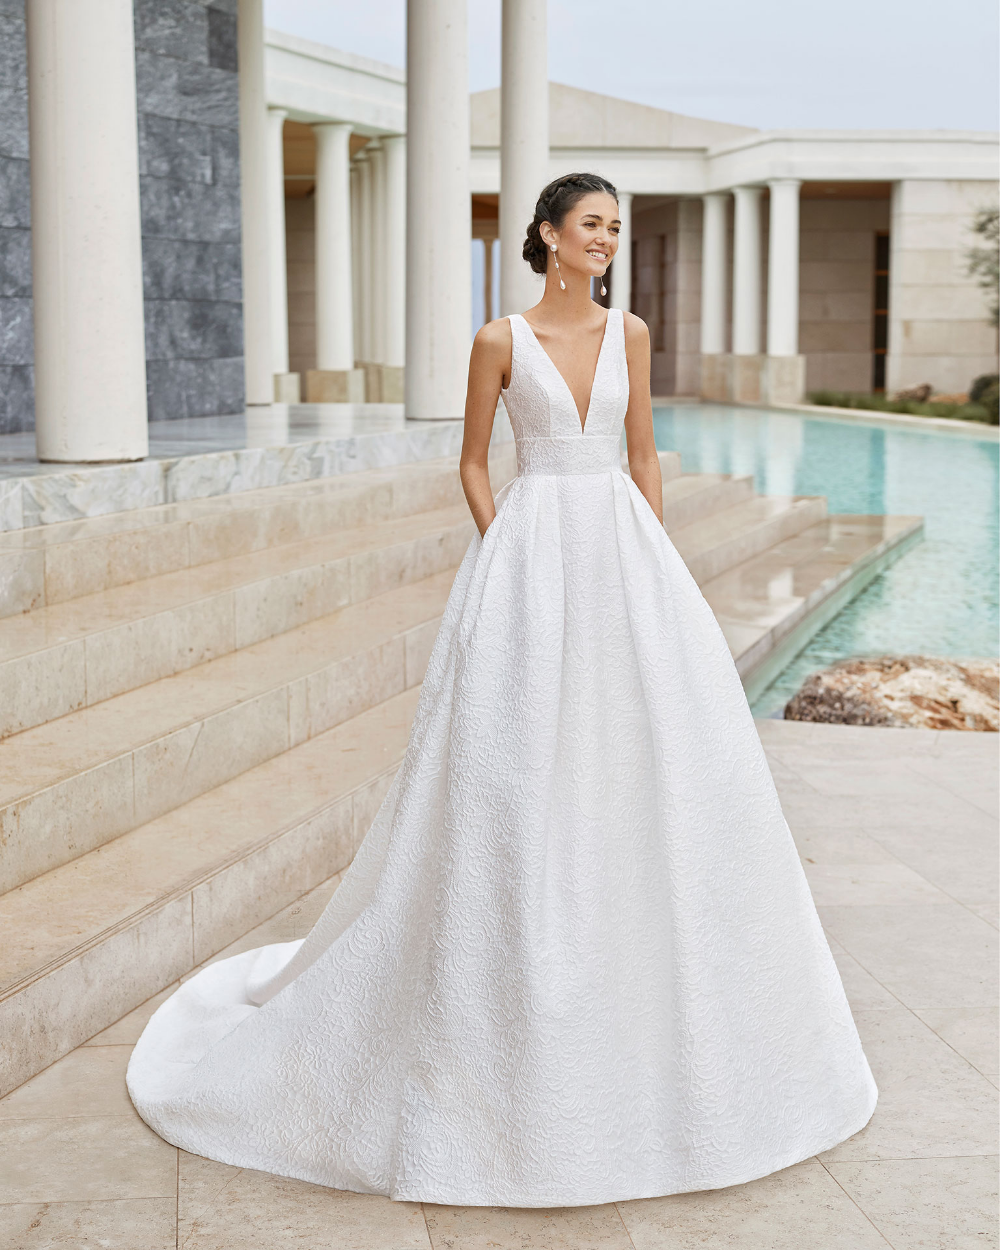 Sabela Bridal 2020 Rosa Clara Couture Collection Tailored Wedding Dress Wedding Dress With Pockets Ball Gowns Wedding